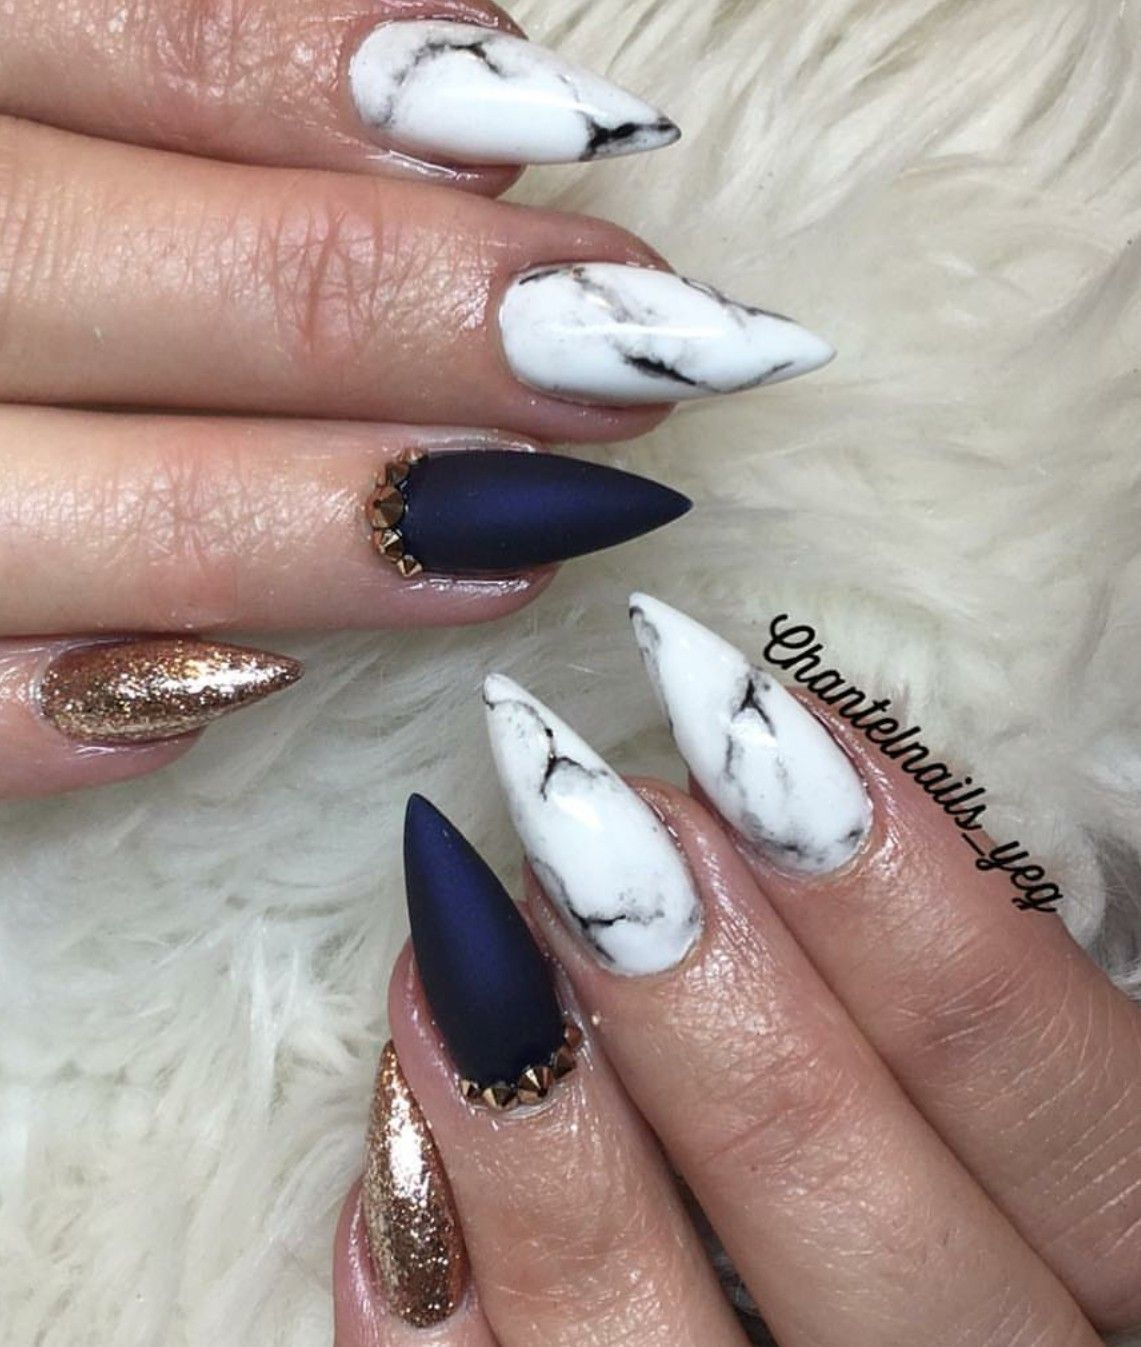 Almond Nails Marble Nails Blue And White Nails Gold Nails Acrylic Nails Fall Nails White Nails With Gold Gold Nails Almond Nails